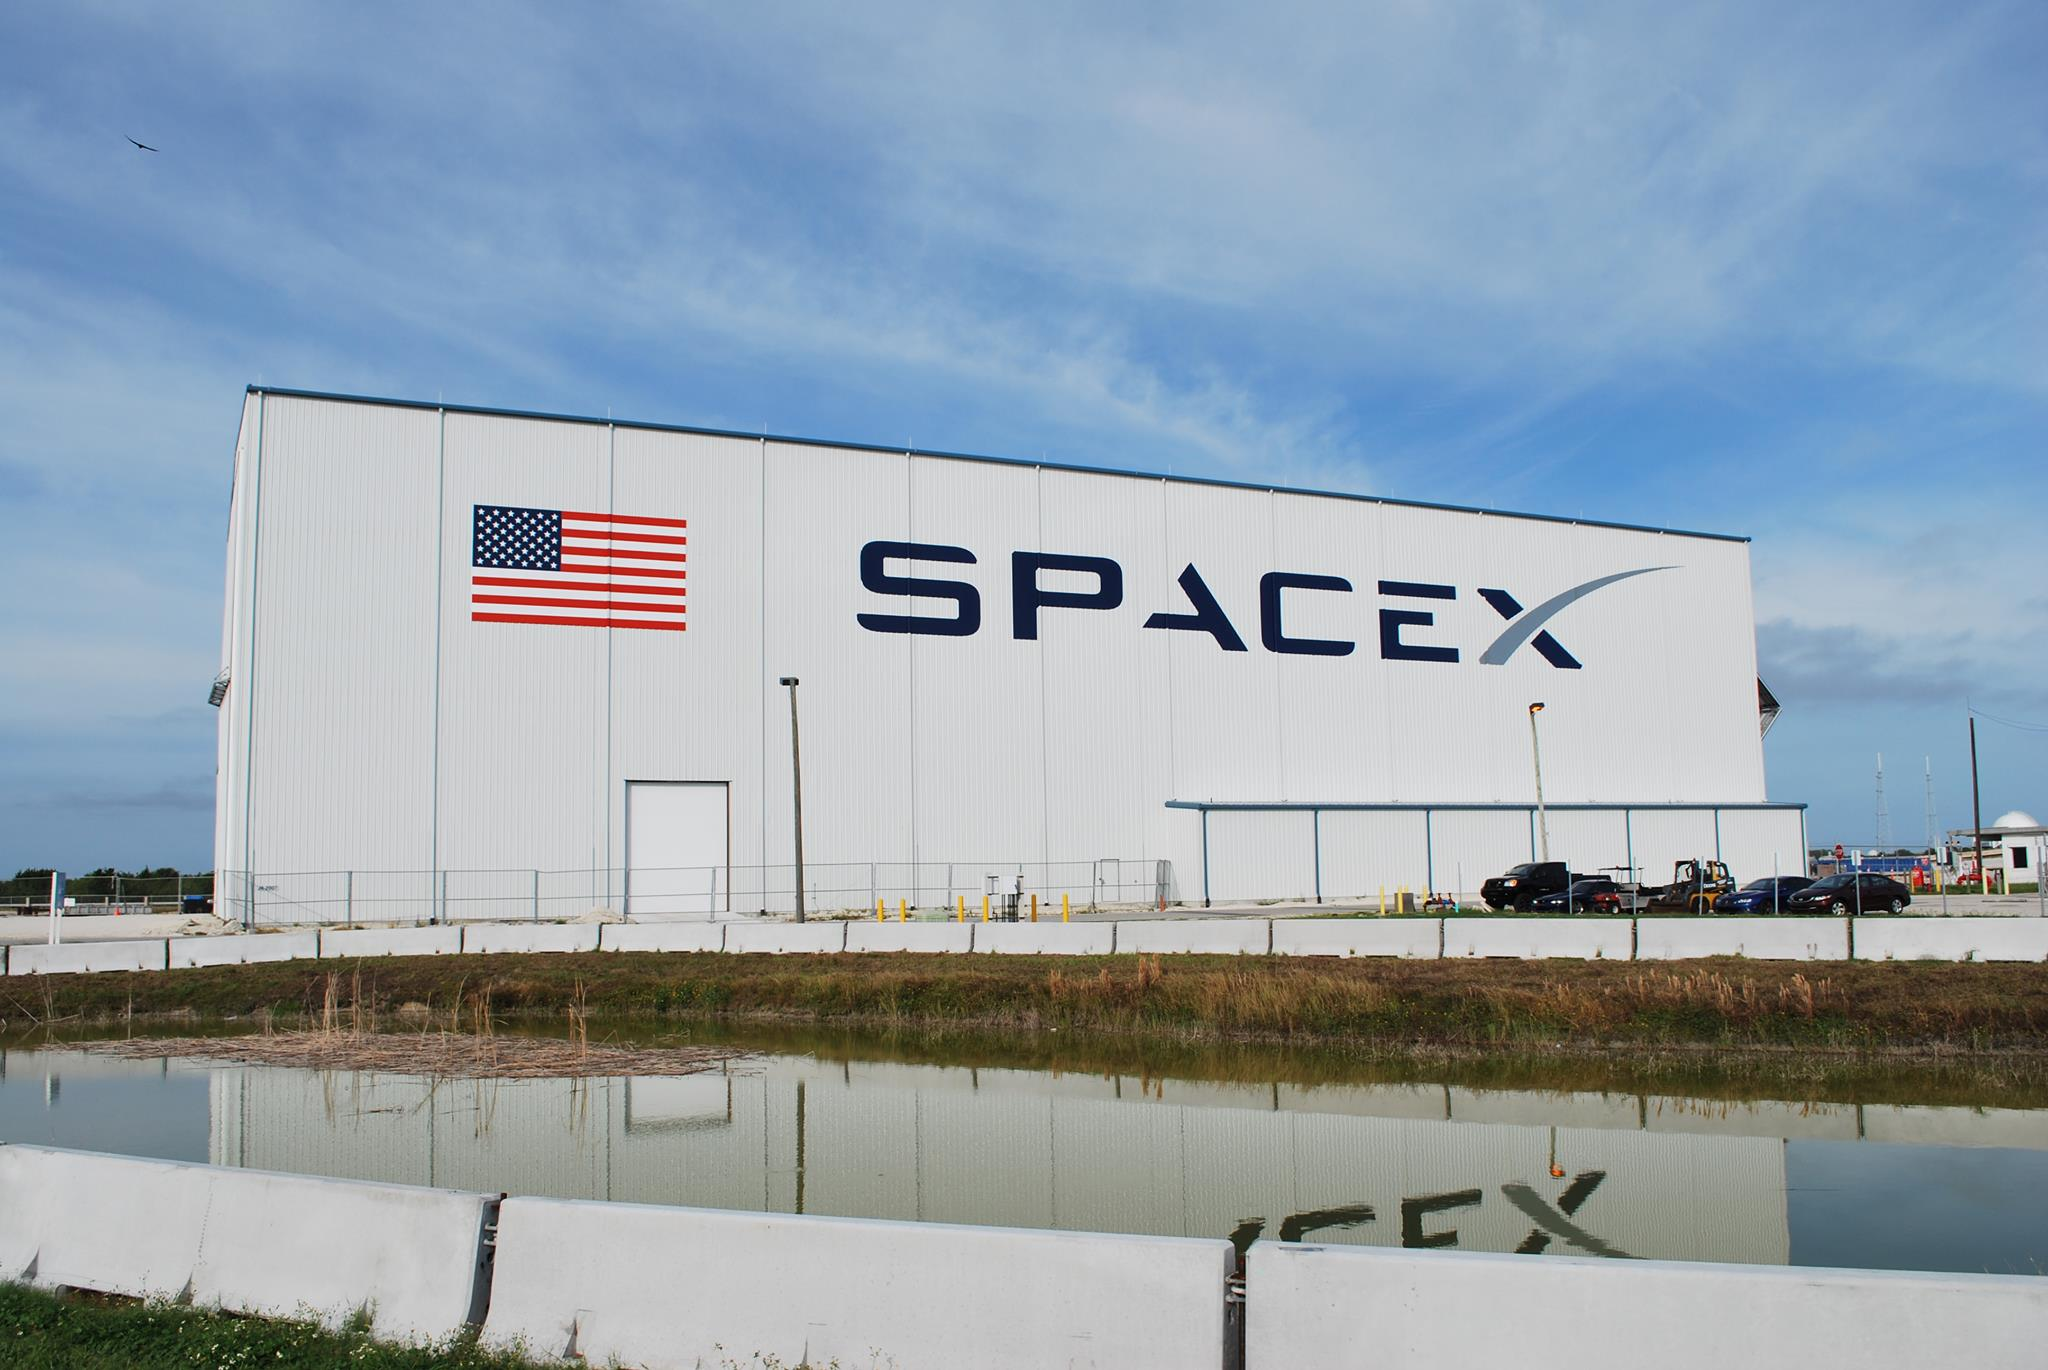 SpaceX's hangar at Launch Complex 39A at Kennedy Space Center.